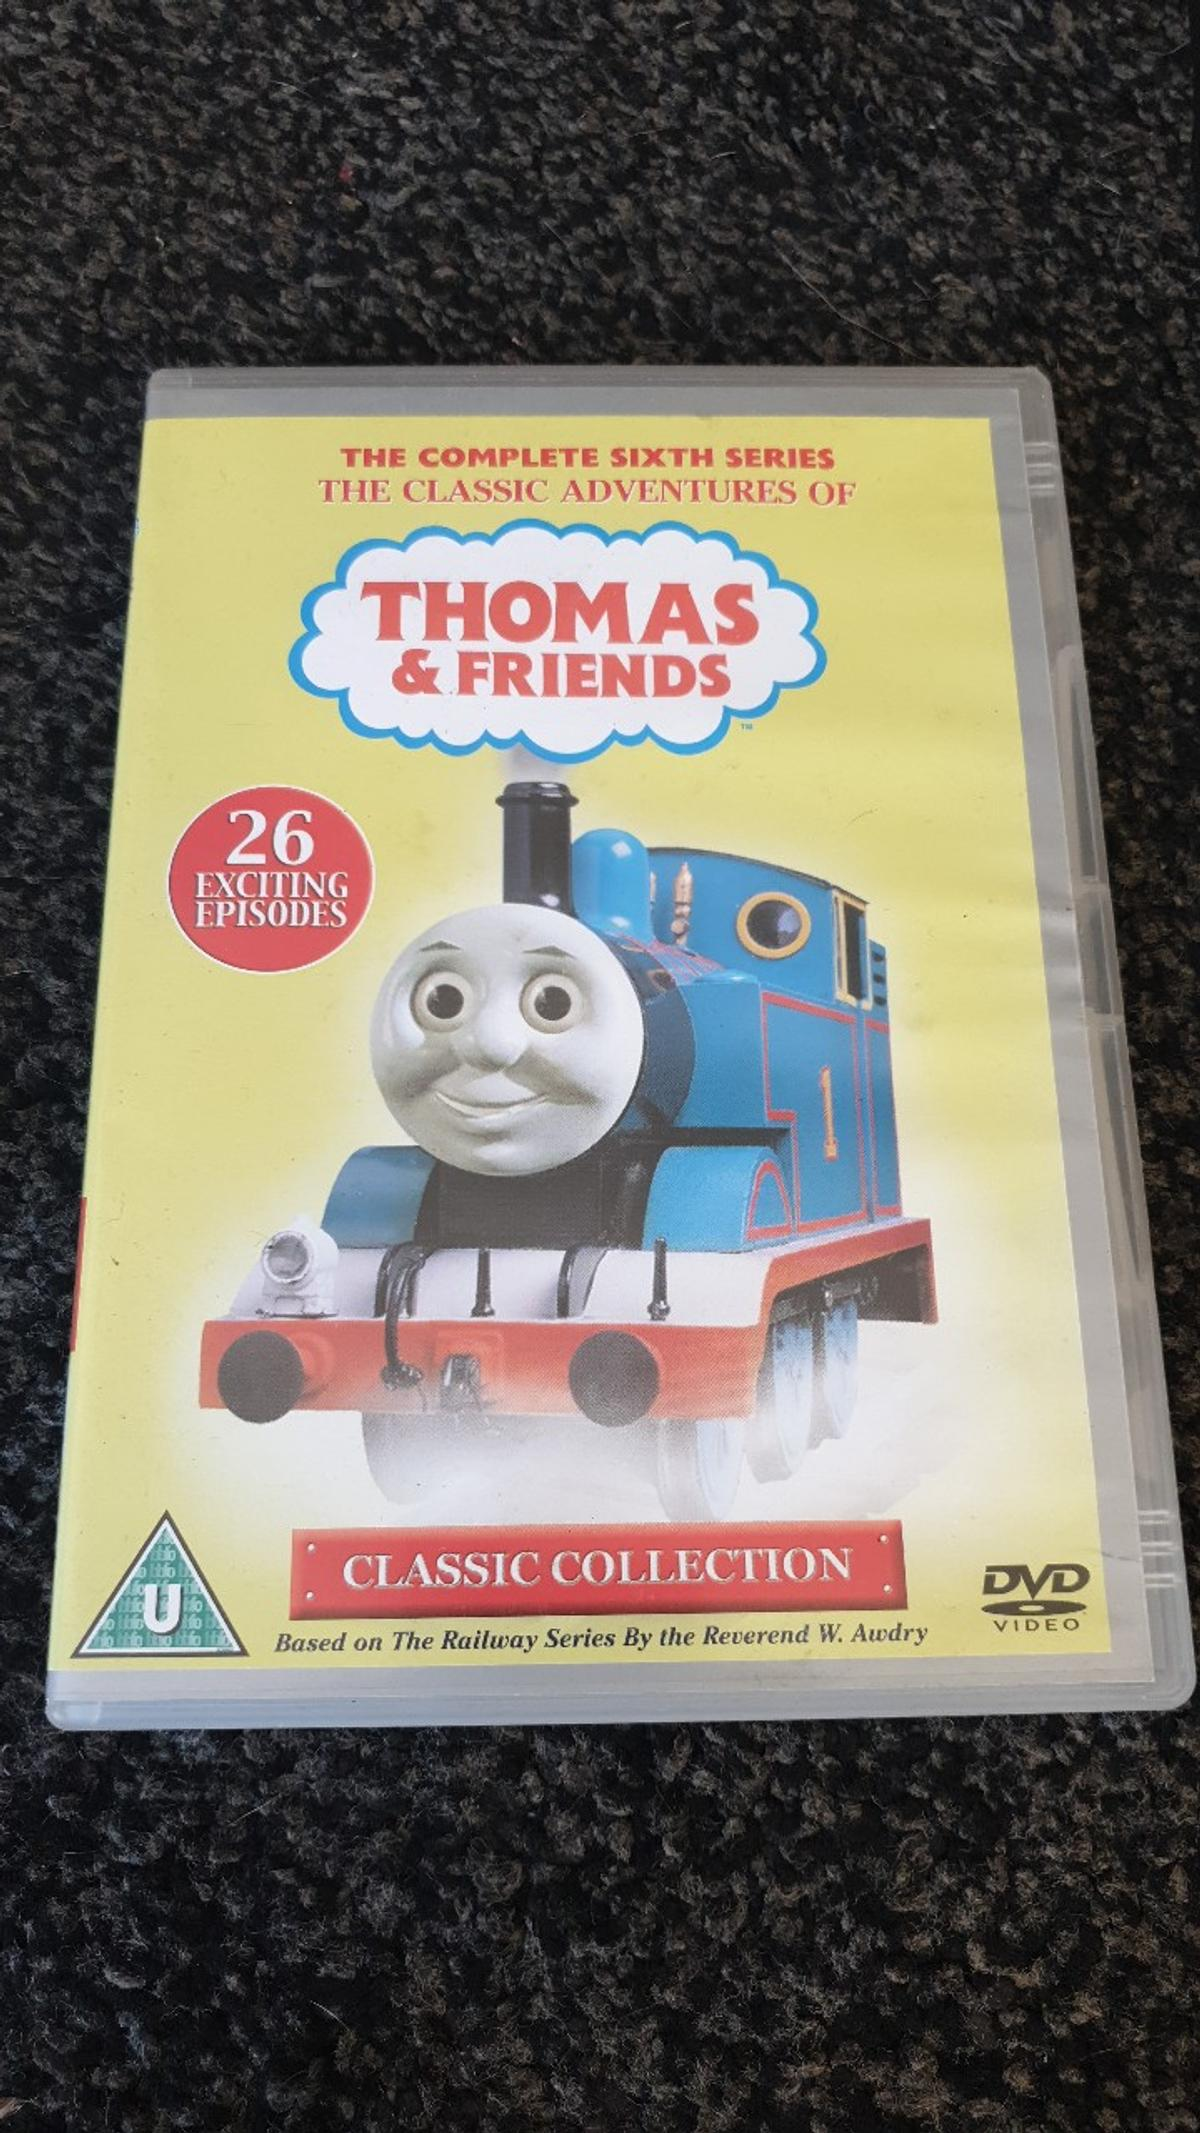 4 children's DVDs one in the night garden one balamory dvd a Thomas and friends 26 episode dvd and a unopened barbie film the magic pegasus first 3d barbie film with 4 3d glasses inside open to offers for individual purchases of the dvds